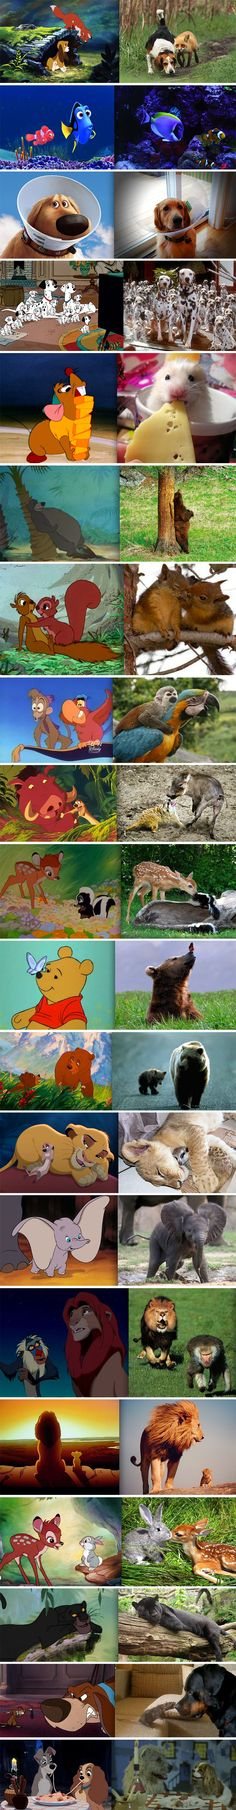 Disney characters in real life!:) Awwwwww <3